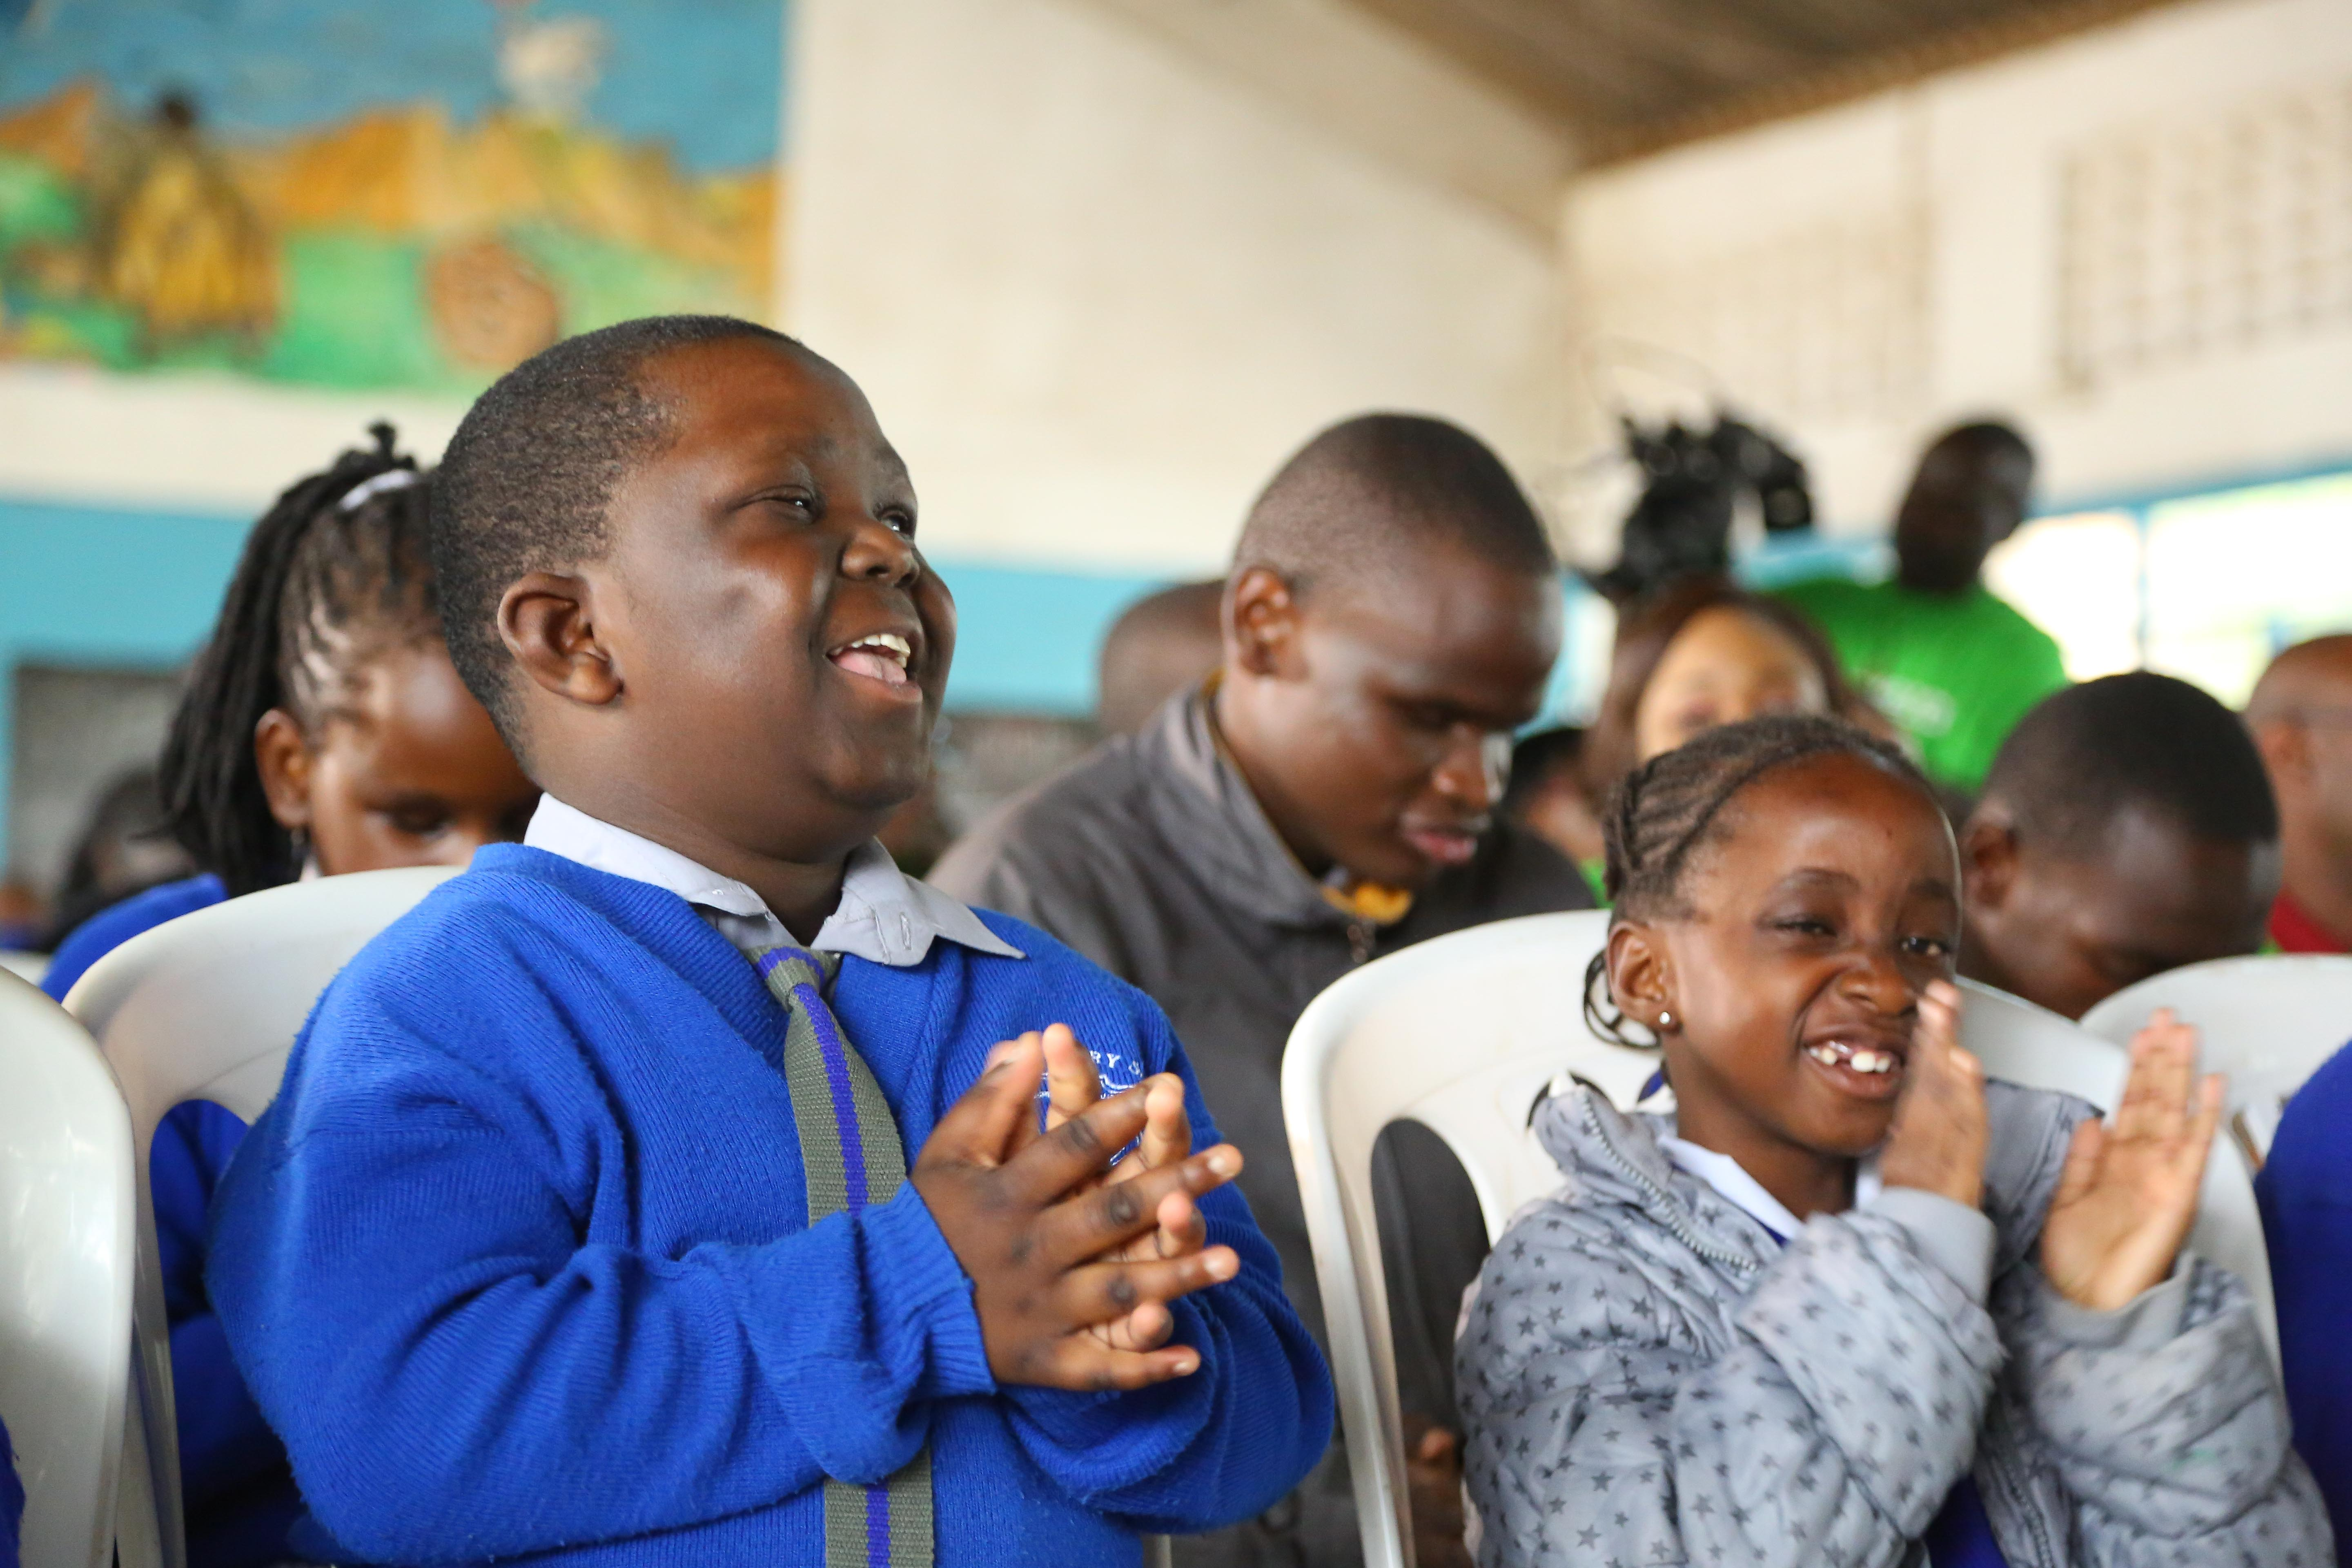 Pupils of Kilimani Integrated Primary School, Nairobi are part of learners who got audio books and playback equipment.